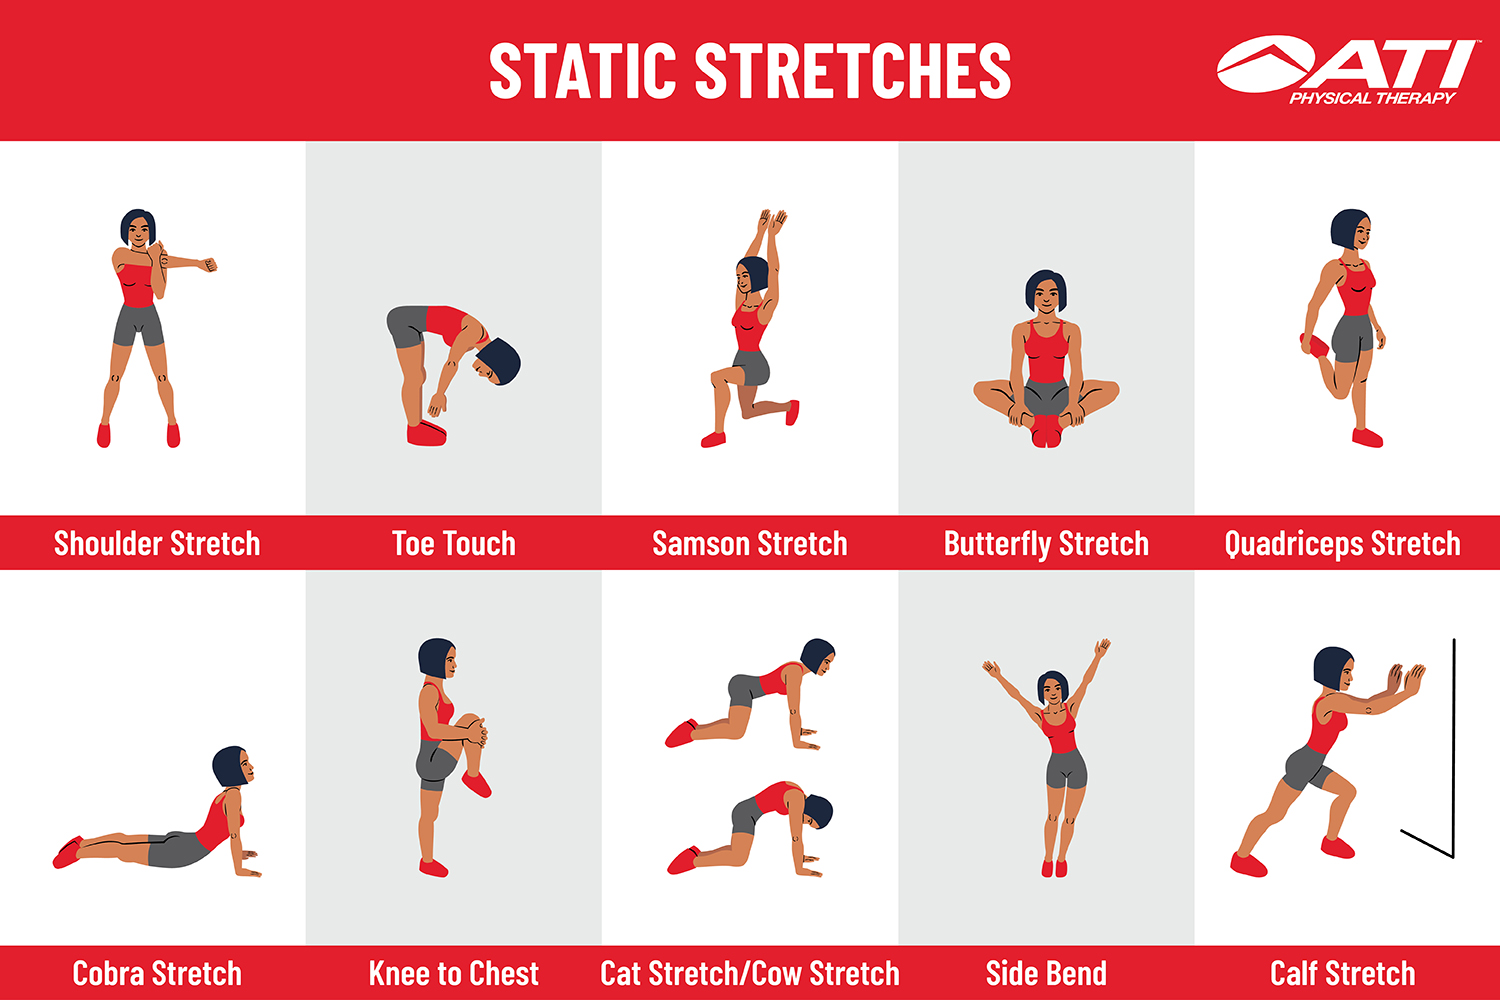 Static stretching exercises with pictures